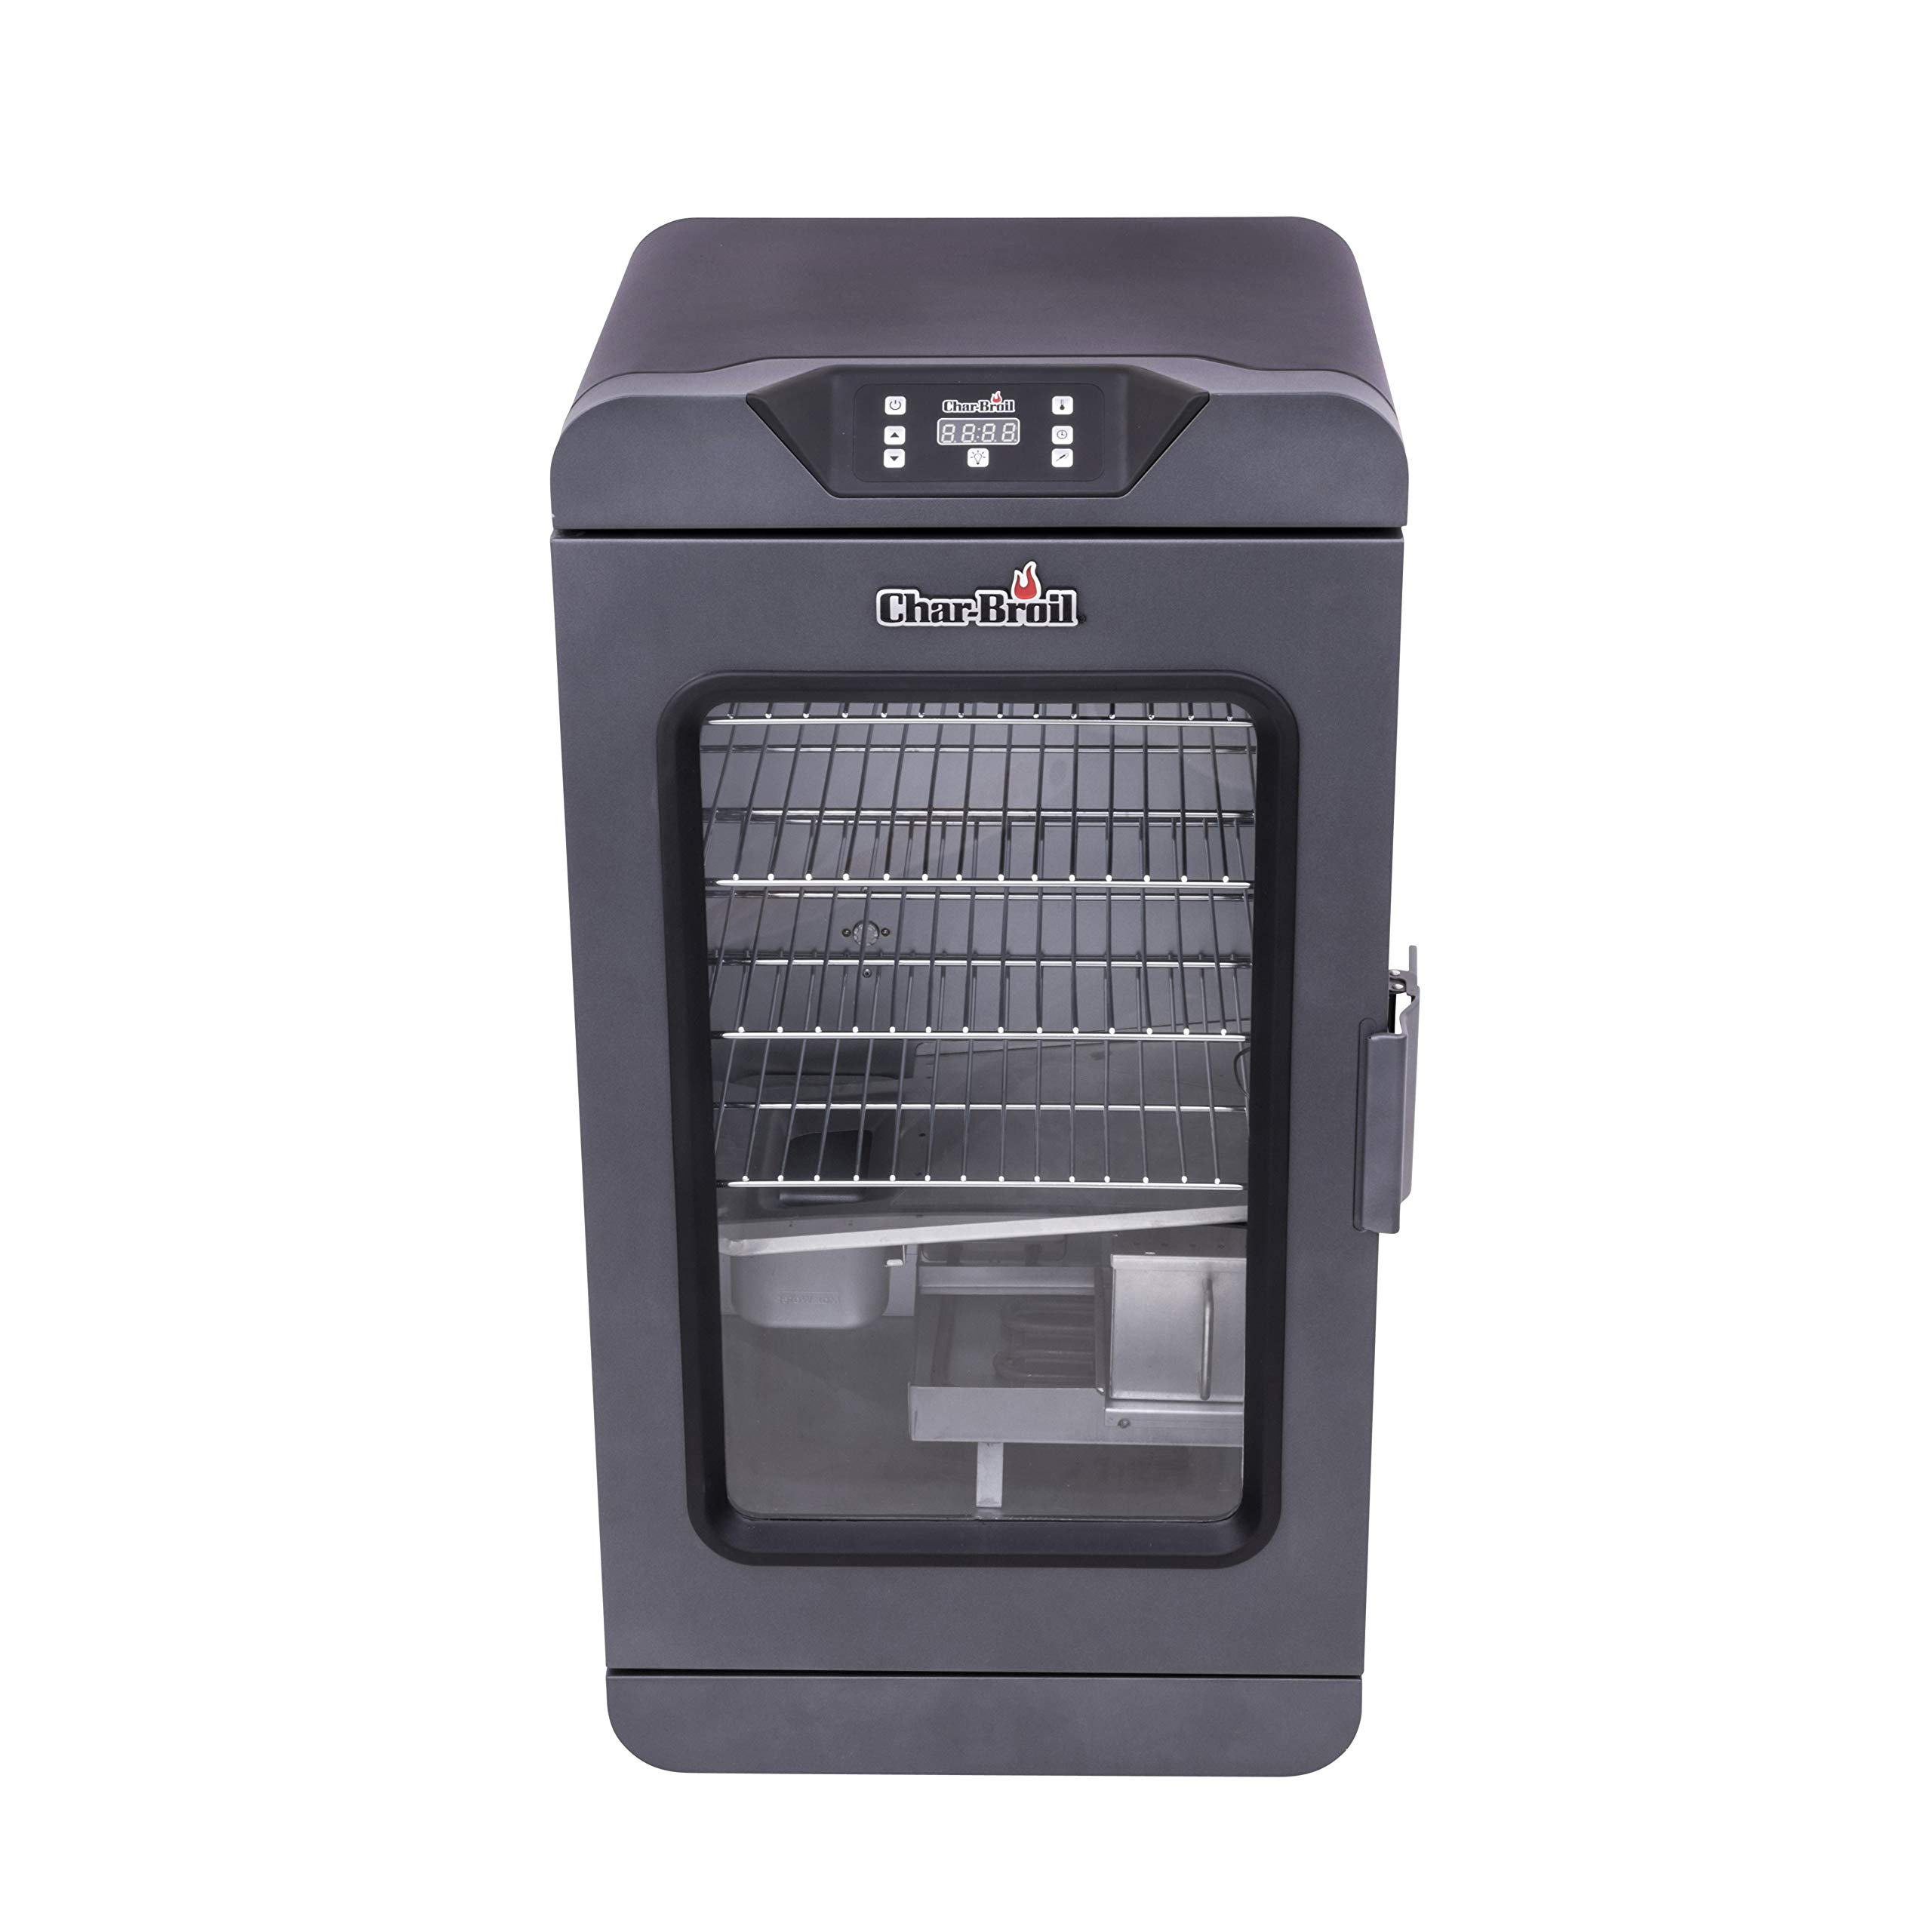 Char-Broil 19202101 Deluxe Black Digital Electric Smoker, 725 Square Inch